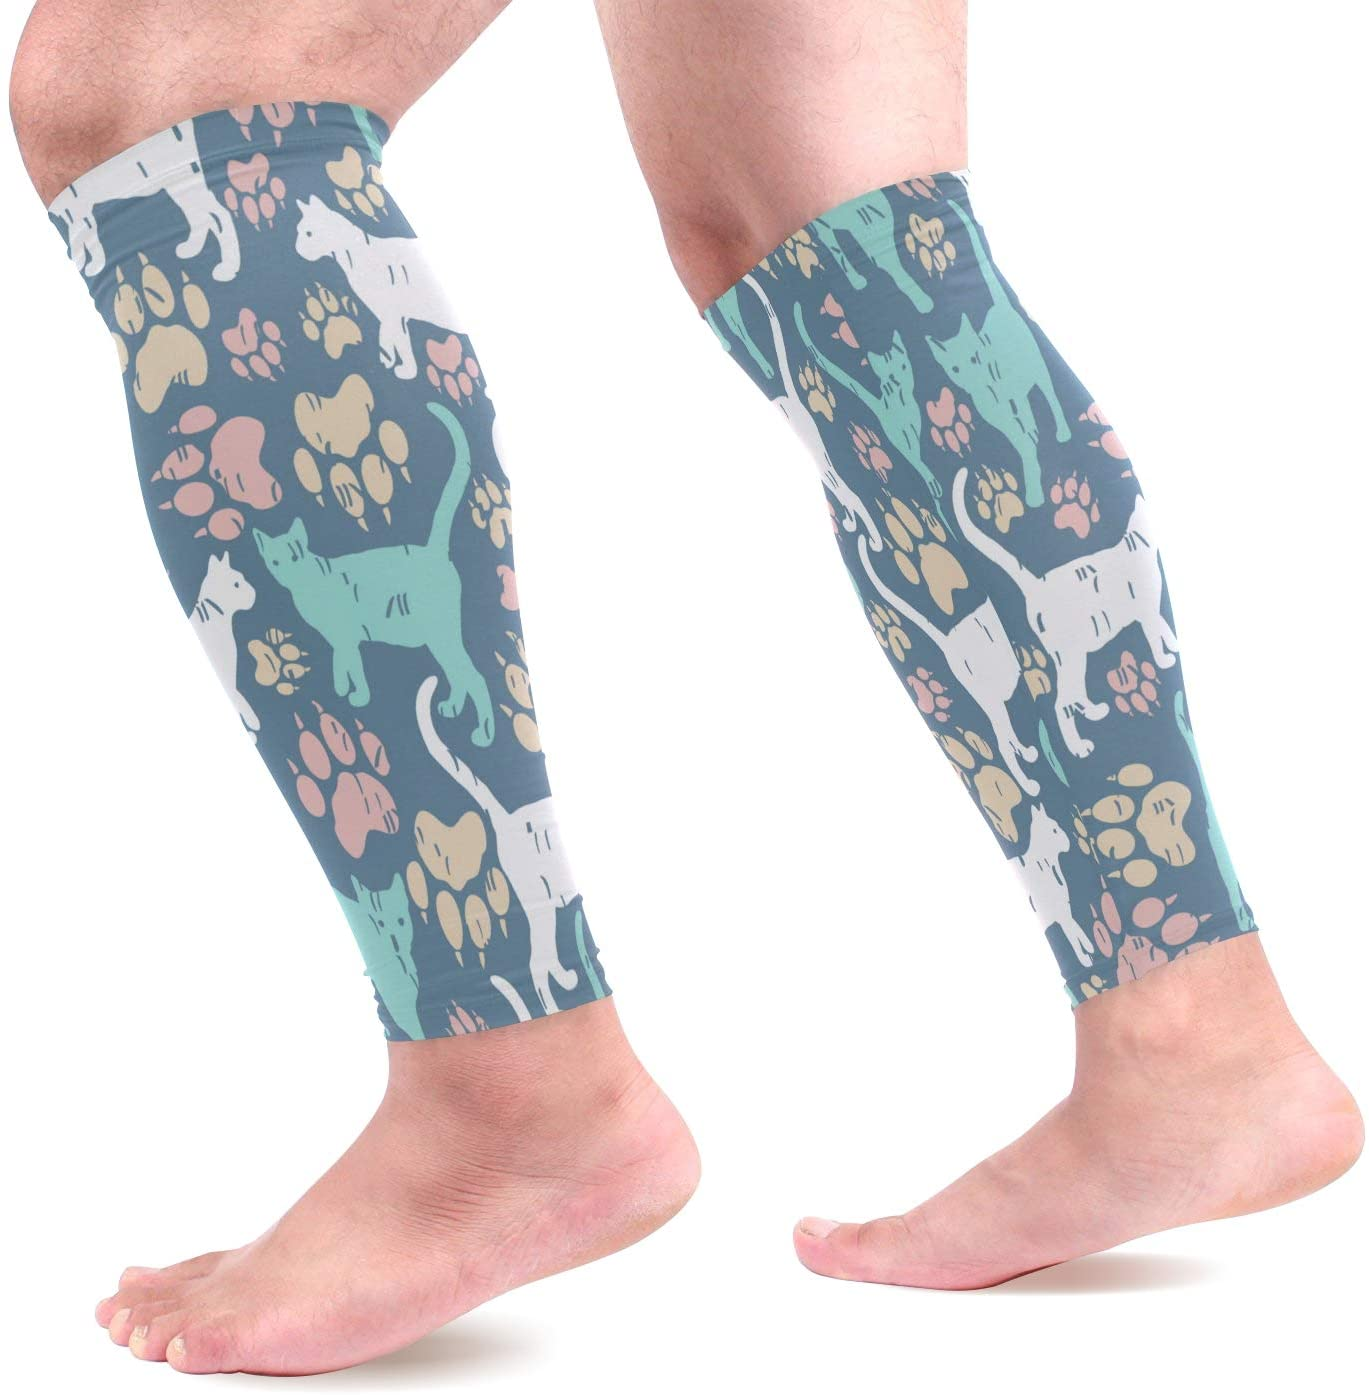 Calf Compression Sleeves Women Cat Paw Footprint Pattern Fantastic Footless Calf Compression Socks for Running, Shin Splint, Calf Pain Relief, Leg Support Sleeve for Running, Air Nurses, Cycling Men